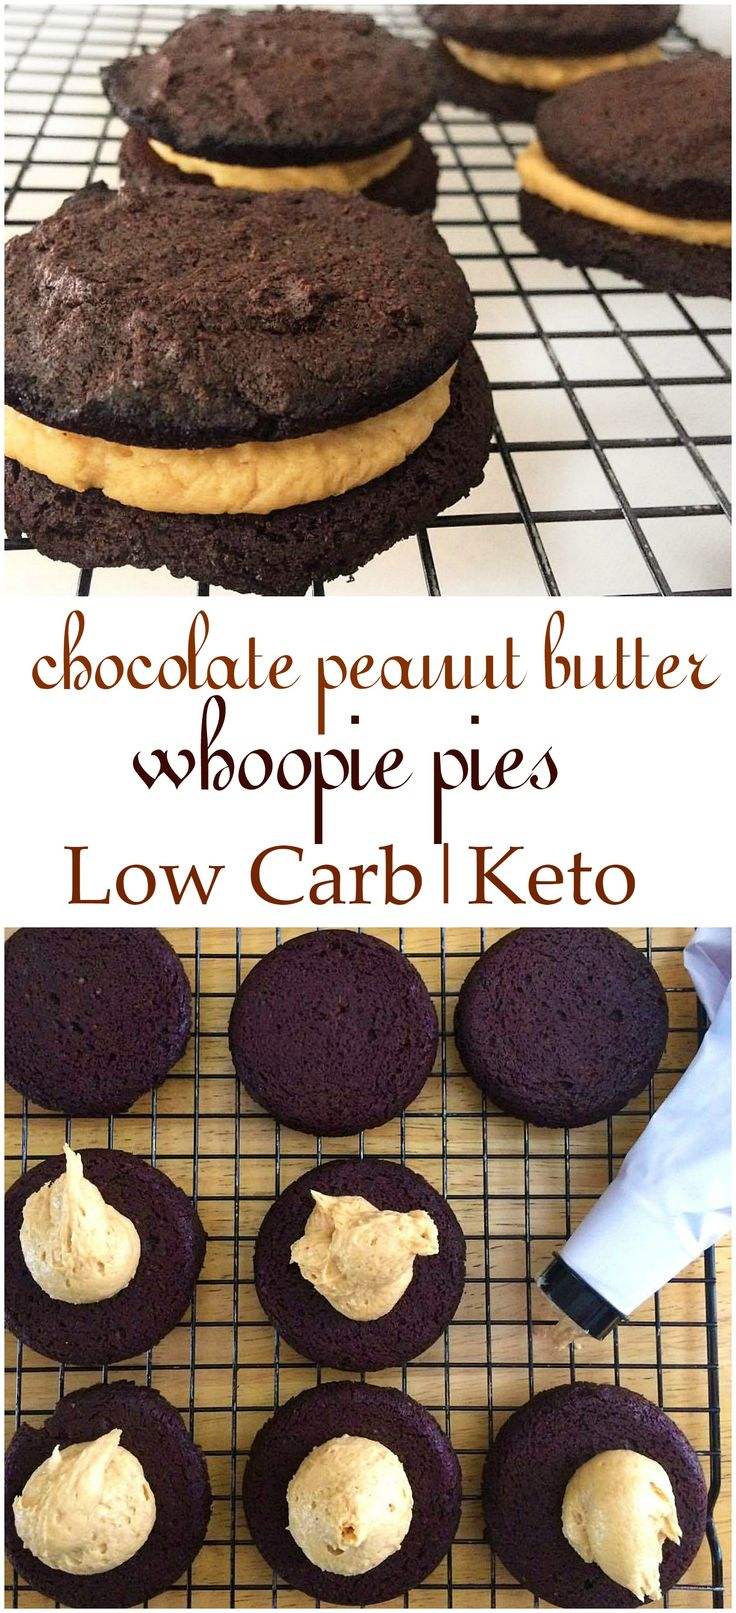 Having a cake craving? These low carb chocolate peanut butter whoopie pies are sure to cure that.....and guilt free. No artificial sweeteners.